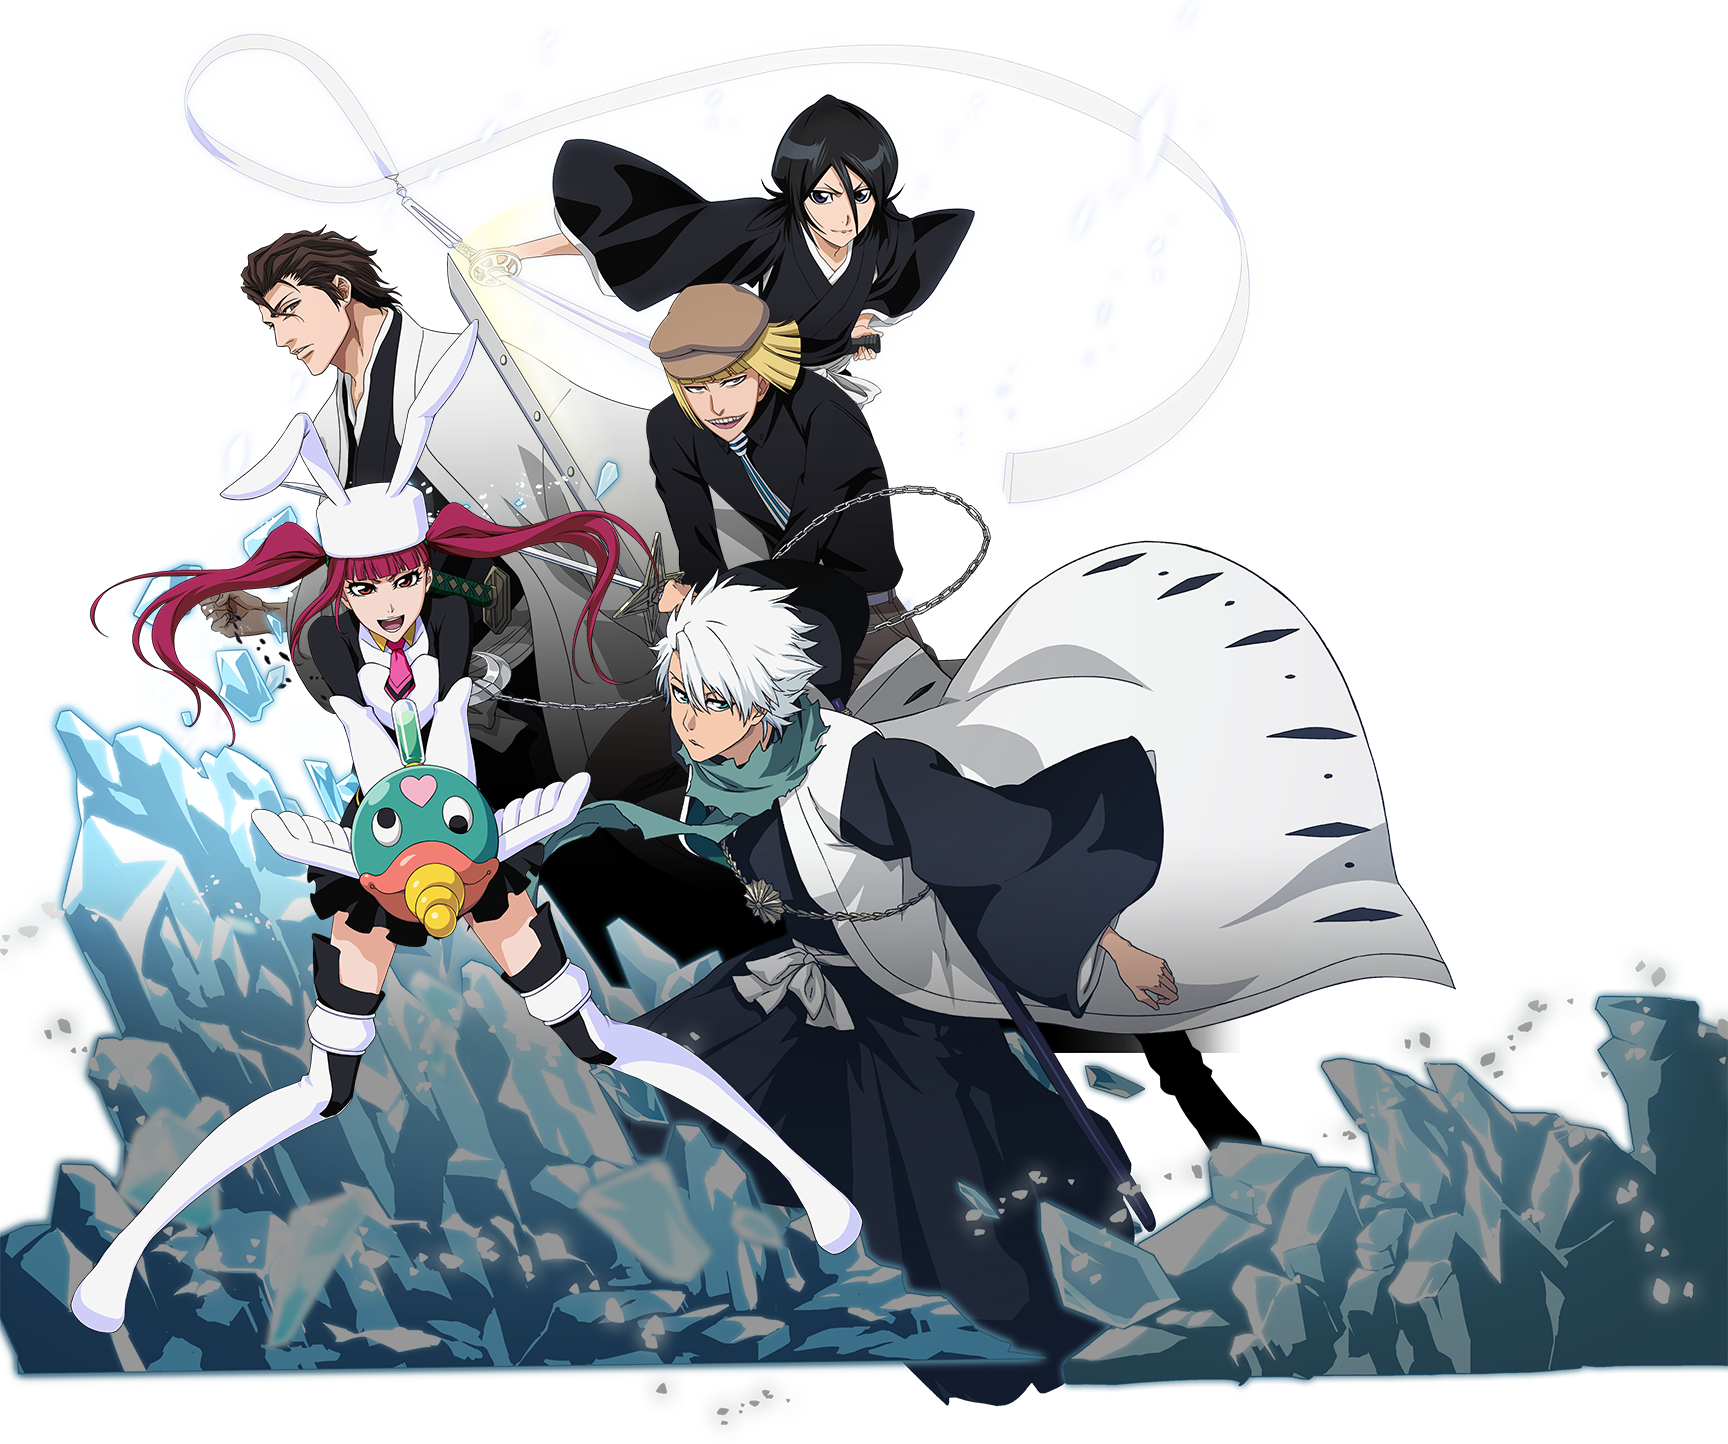 Bleach is now in a game! Make the strongest team possible with beloved characters!